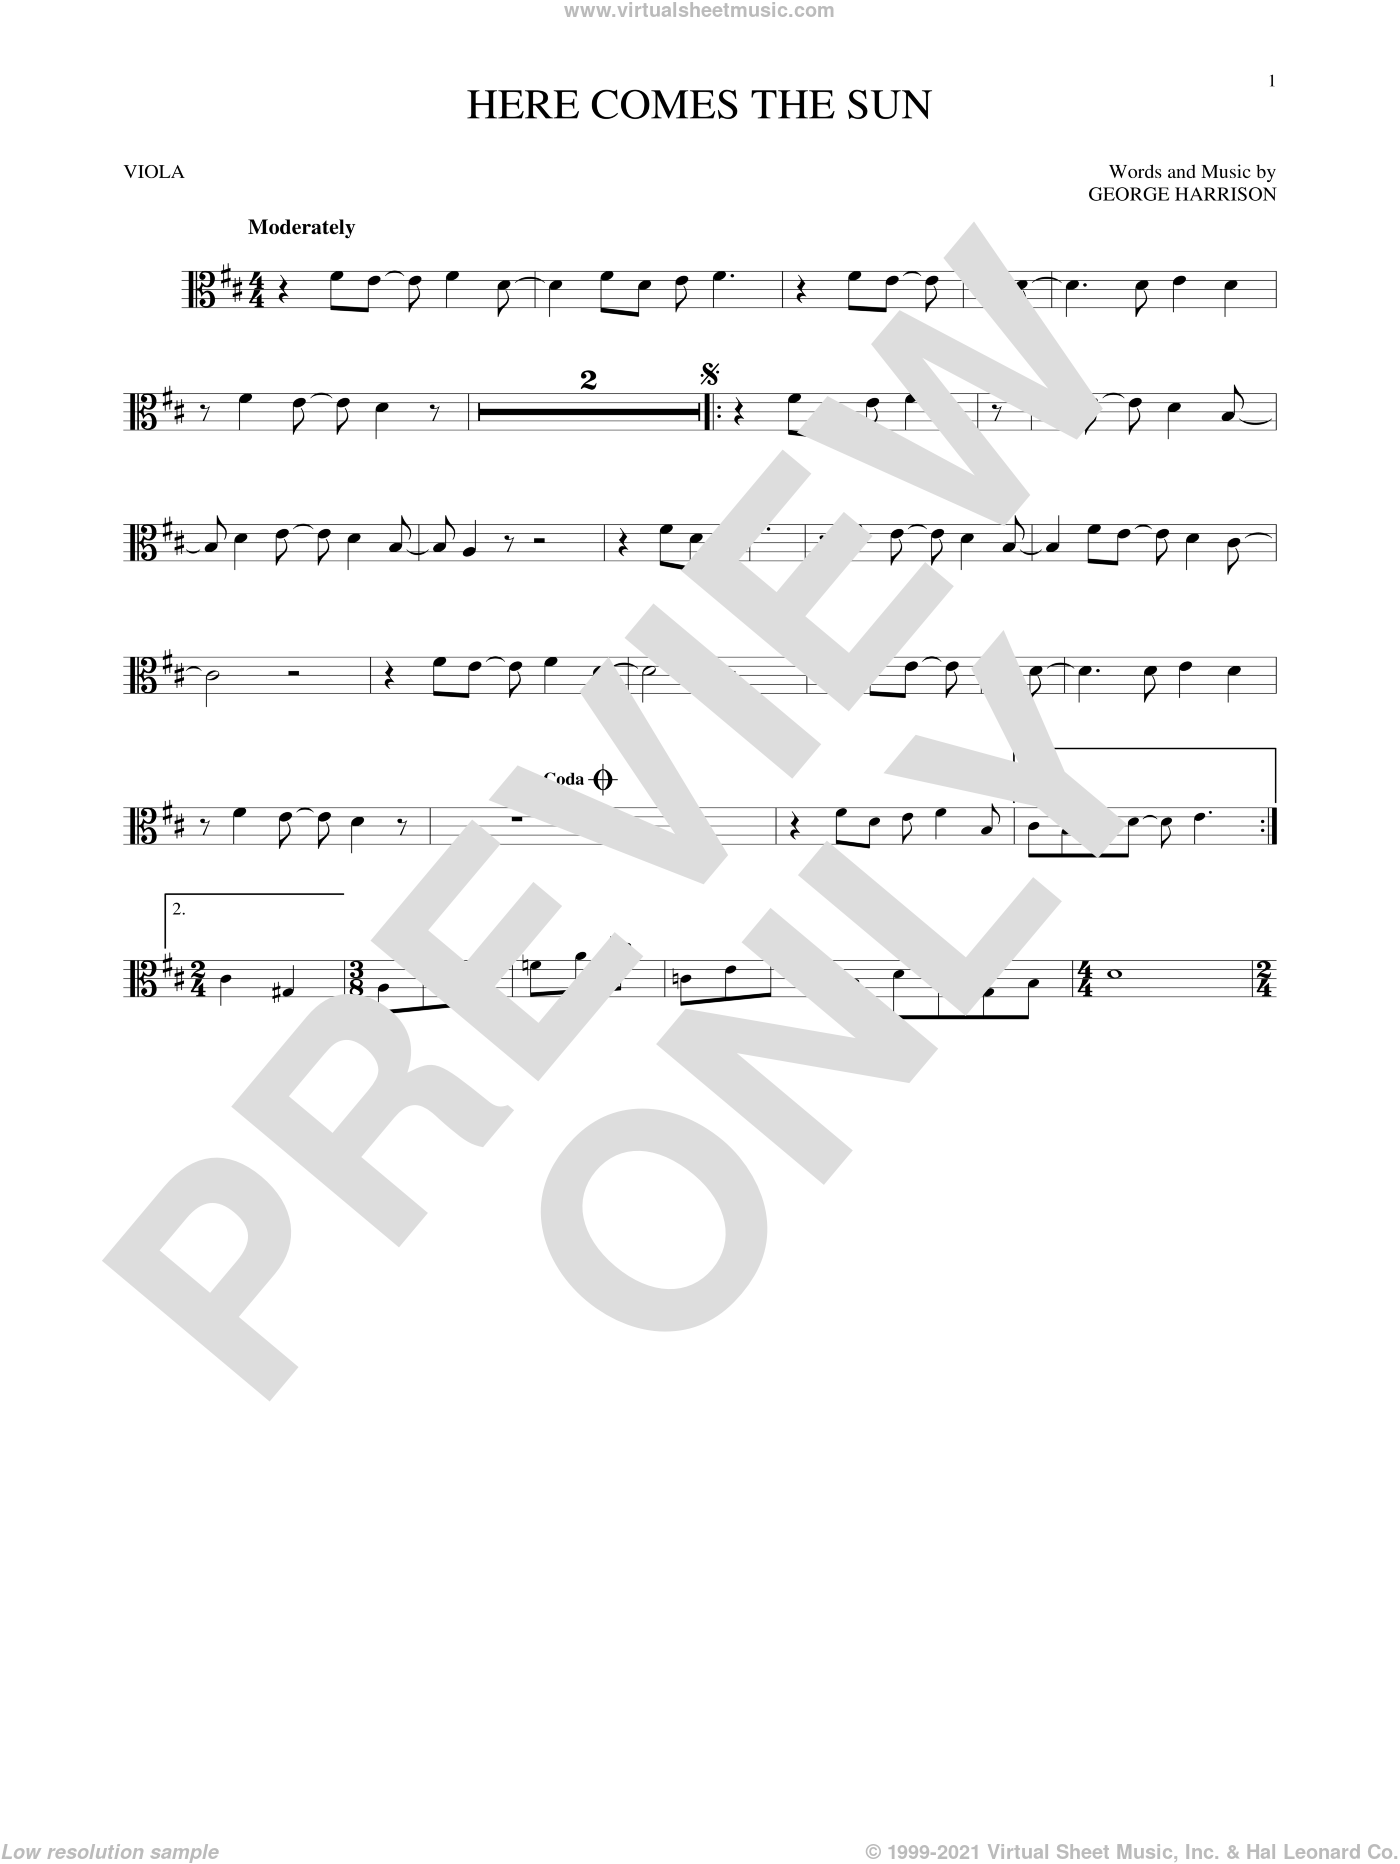 Here Comes The Sun sheet music for viola solo by The Beatles and George Harrison, intermediate skill level